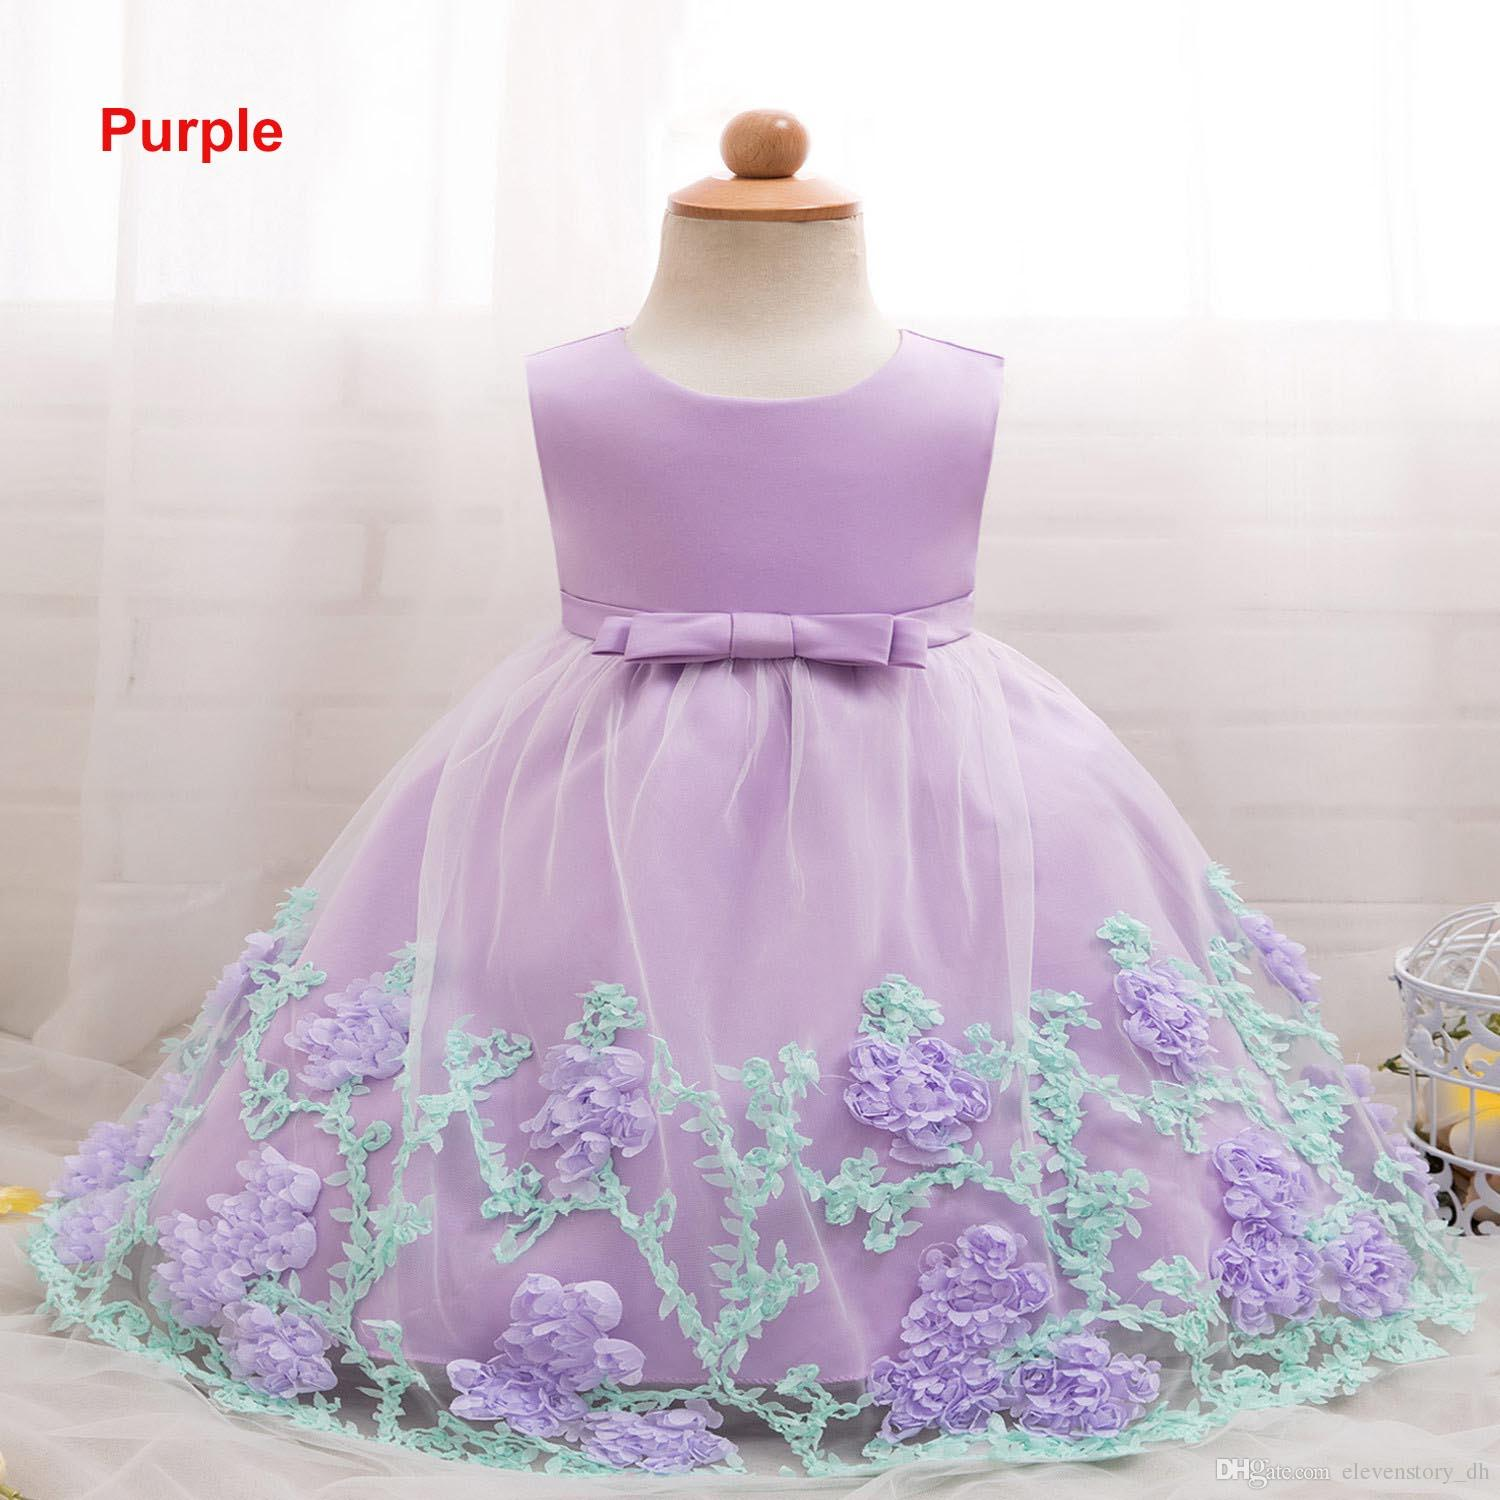 94bed07cc 2019 6 Months To 2 Years Baby Girls Tutu Flowers Dresses